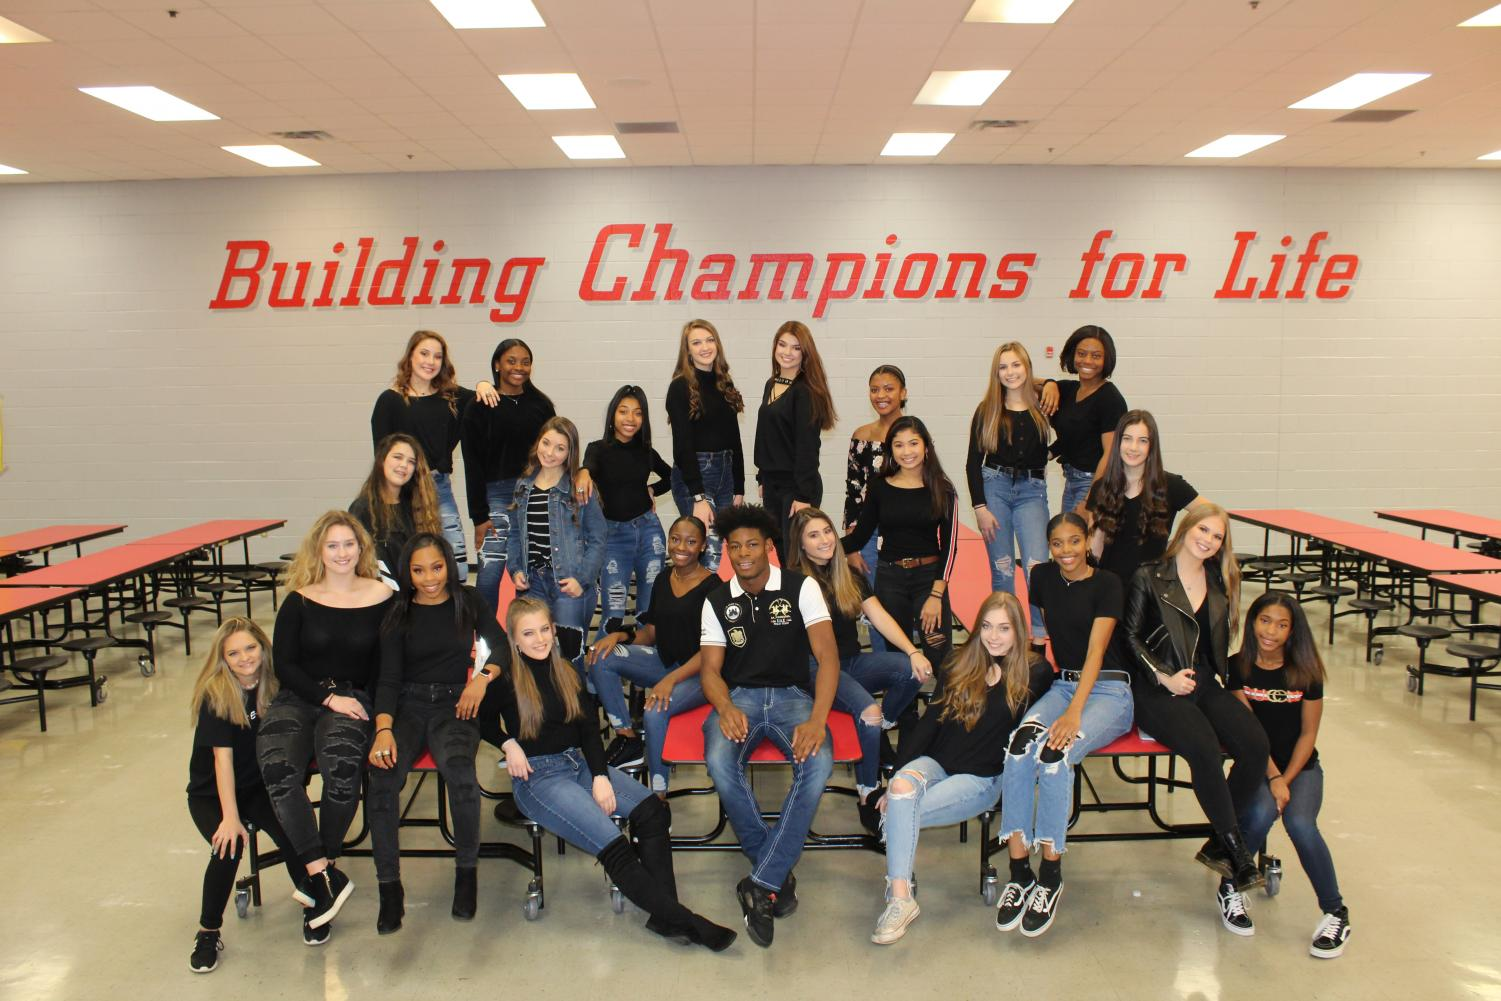 """The Center Hill Dance Team placed 6th in the nation in Large Varsity Hip Hop for the team's highest UDA Nationals finish in school history. """"We have never placed higher than 8th, so to get 6th in the nation is a really big deal,"""" senior dance captain Kennedi Evans said. CHDT also placed 9th in the nation in the Large Varsity Gameday category."""